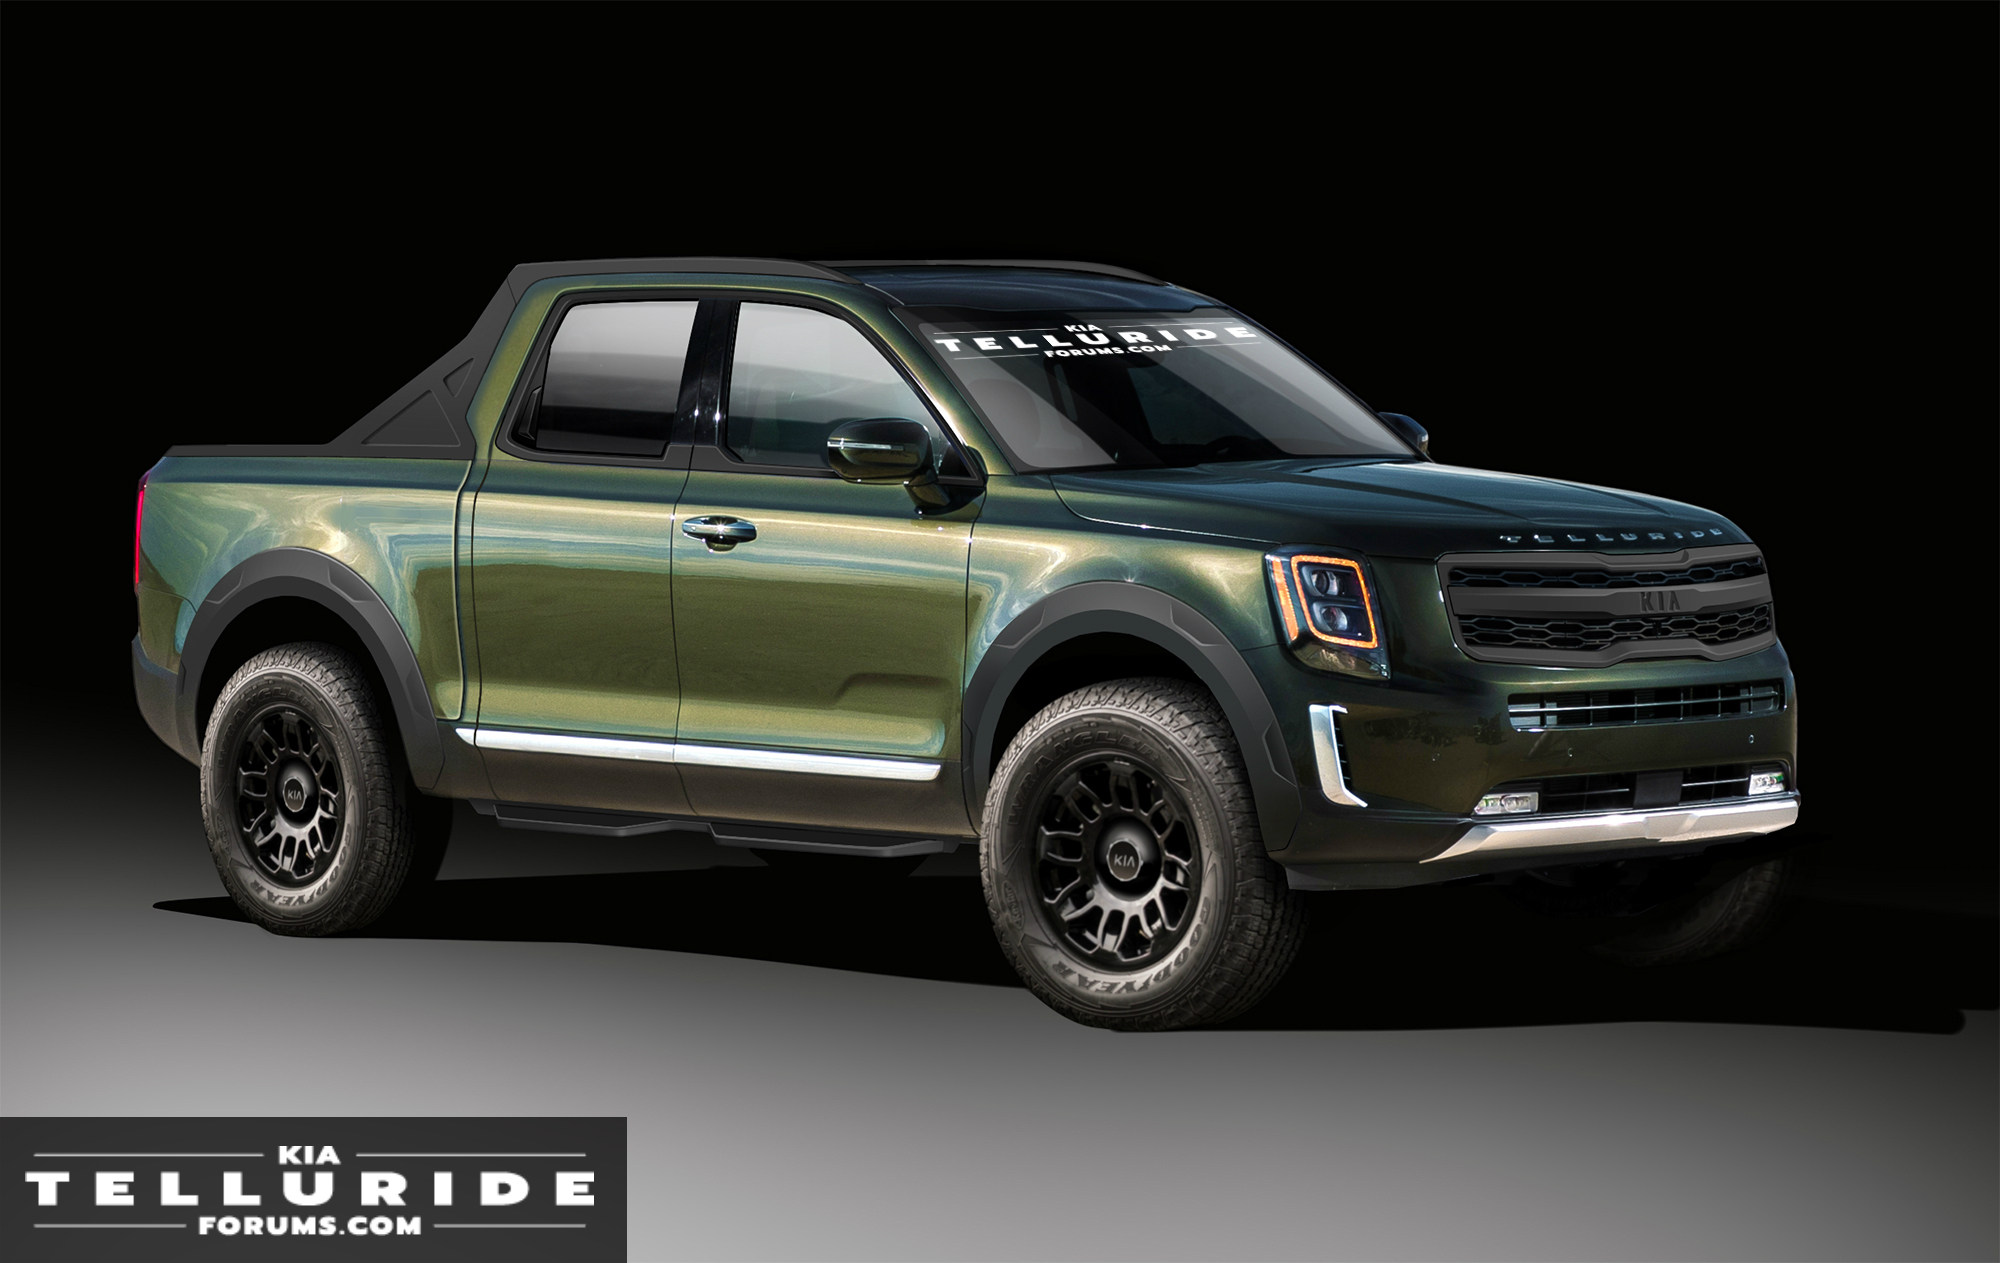 Kia Pickup Truck Previewed Kia Telluride Forum